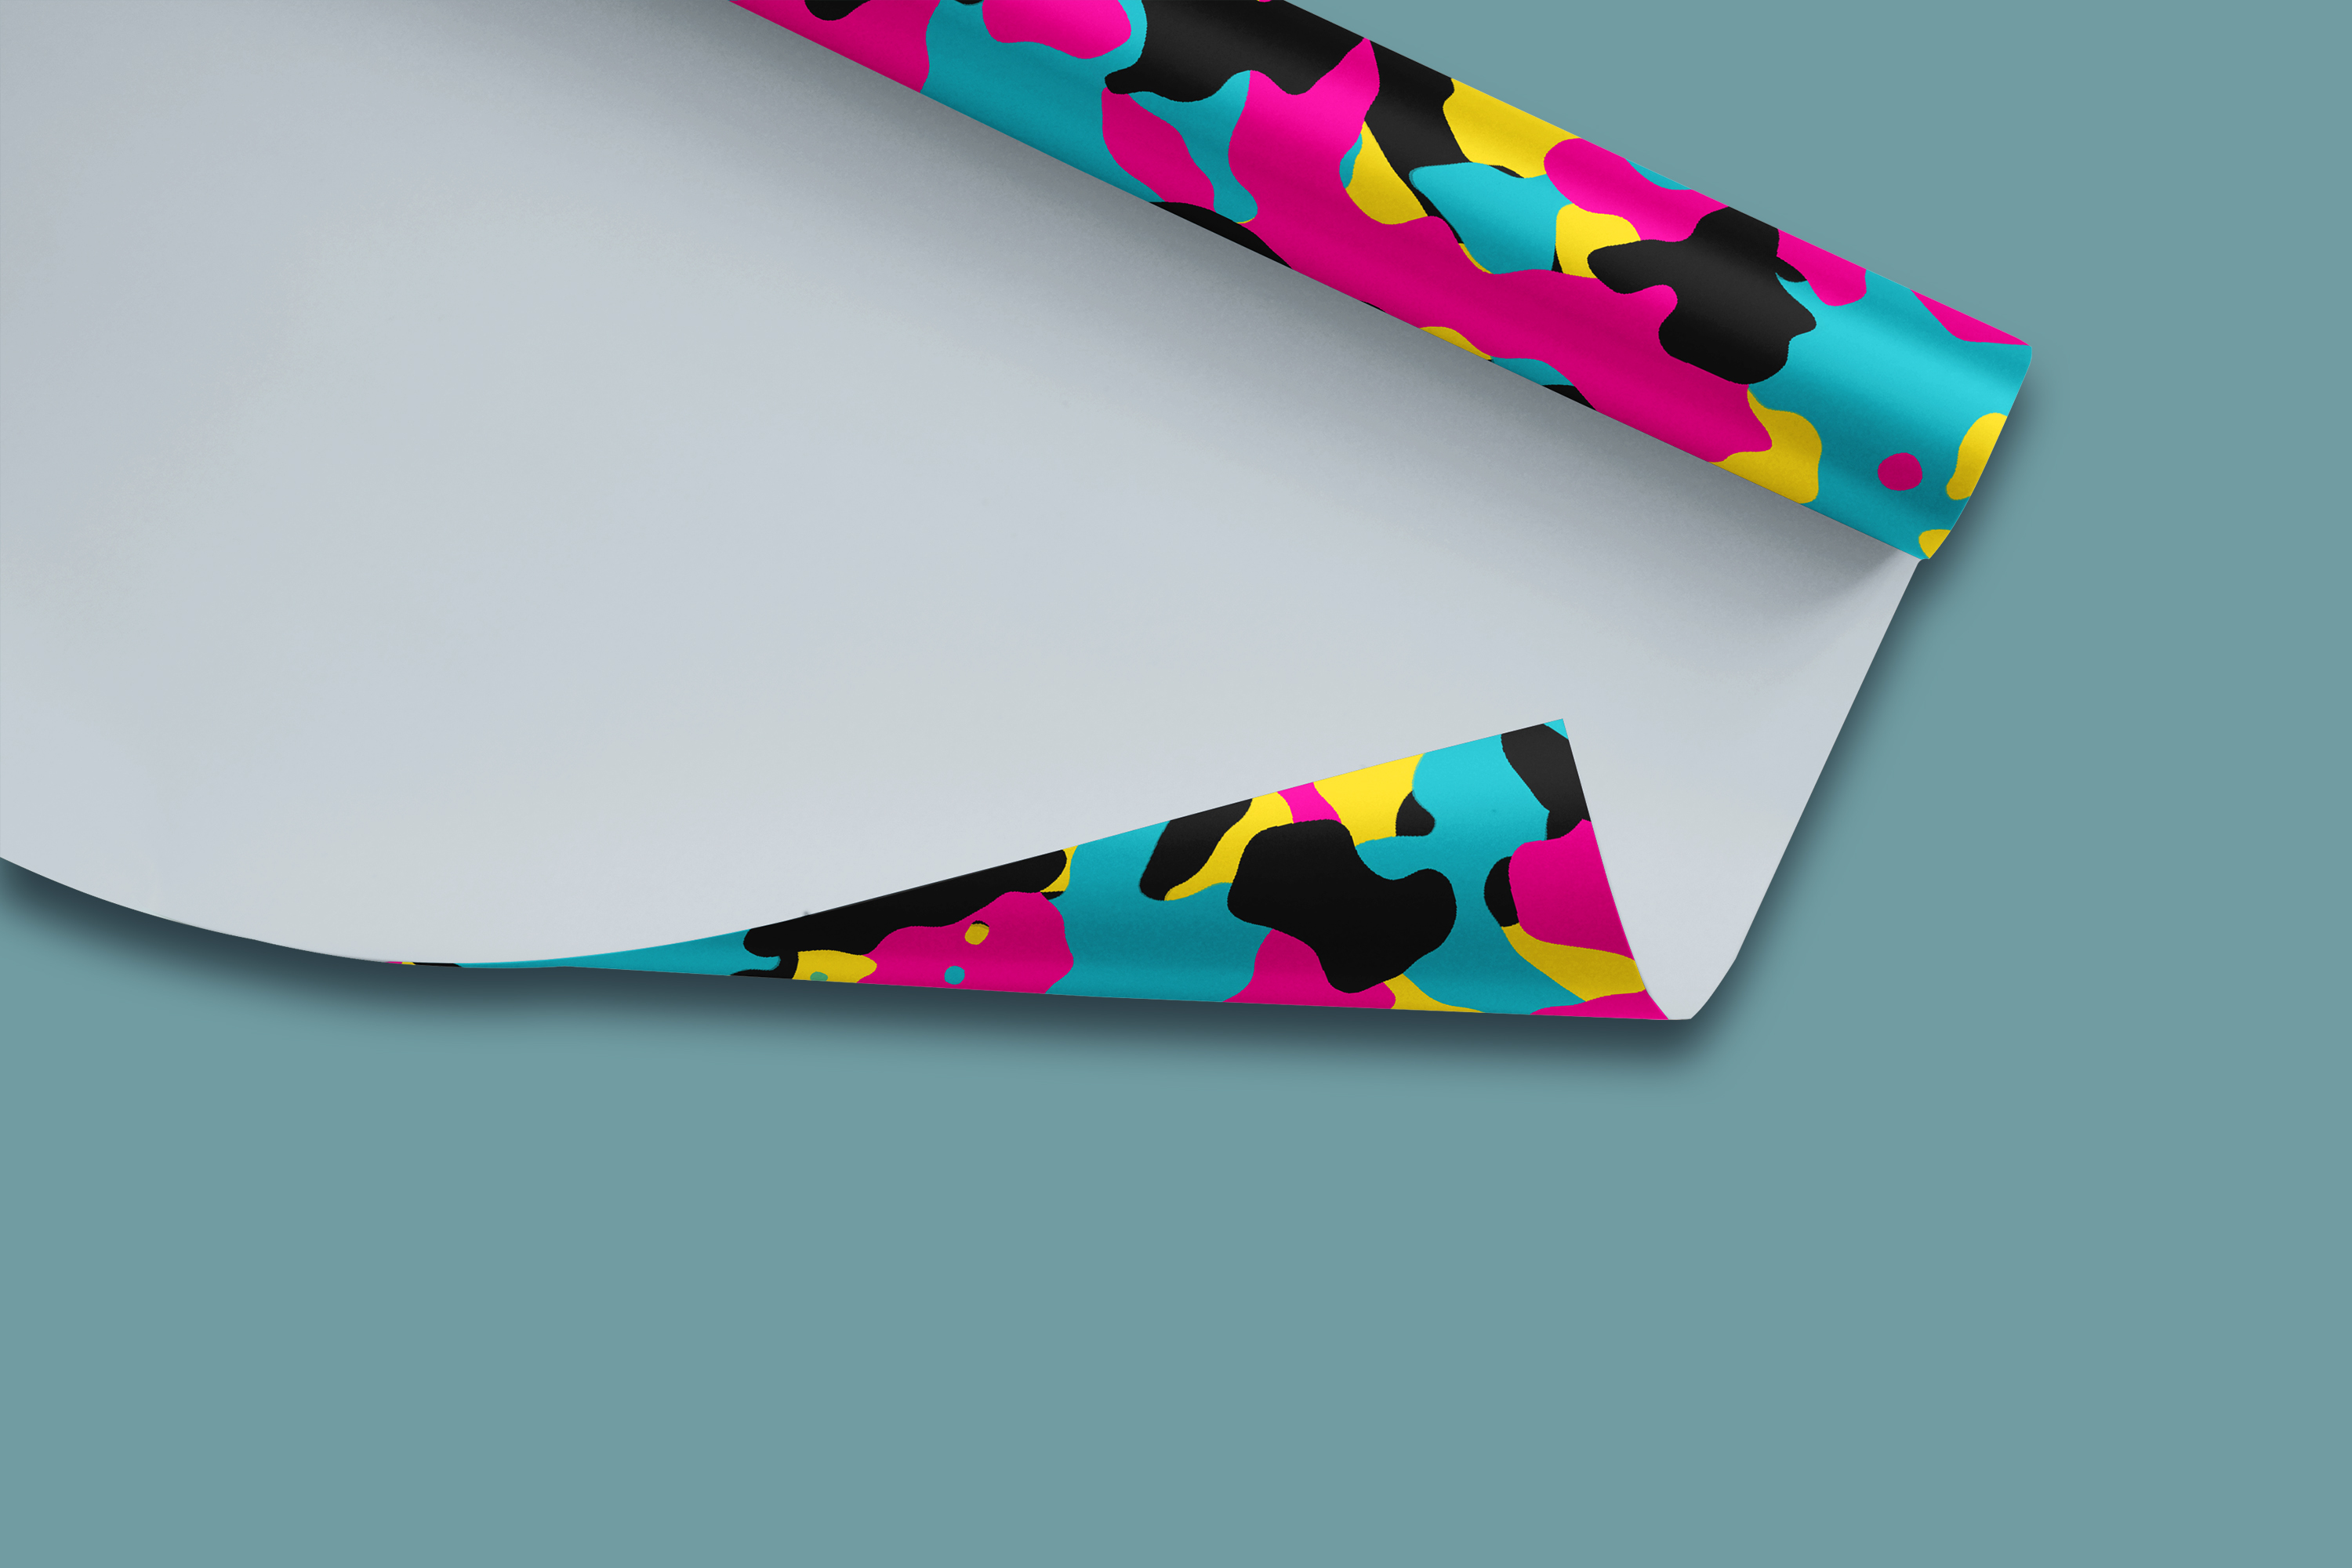 40 Alternative Camouflage Paper Designs example image 9